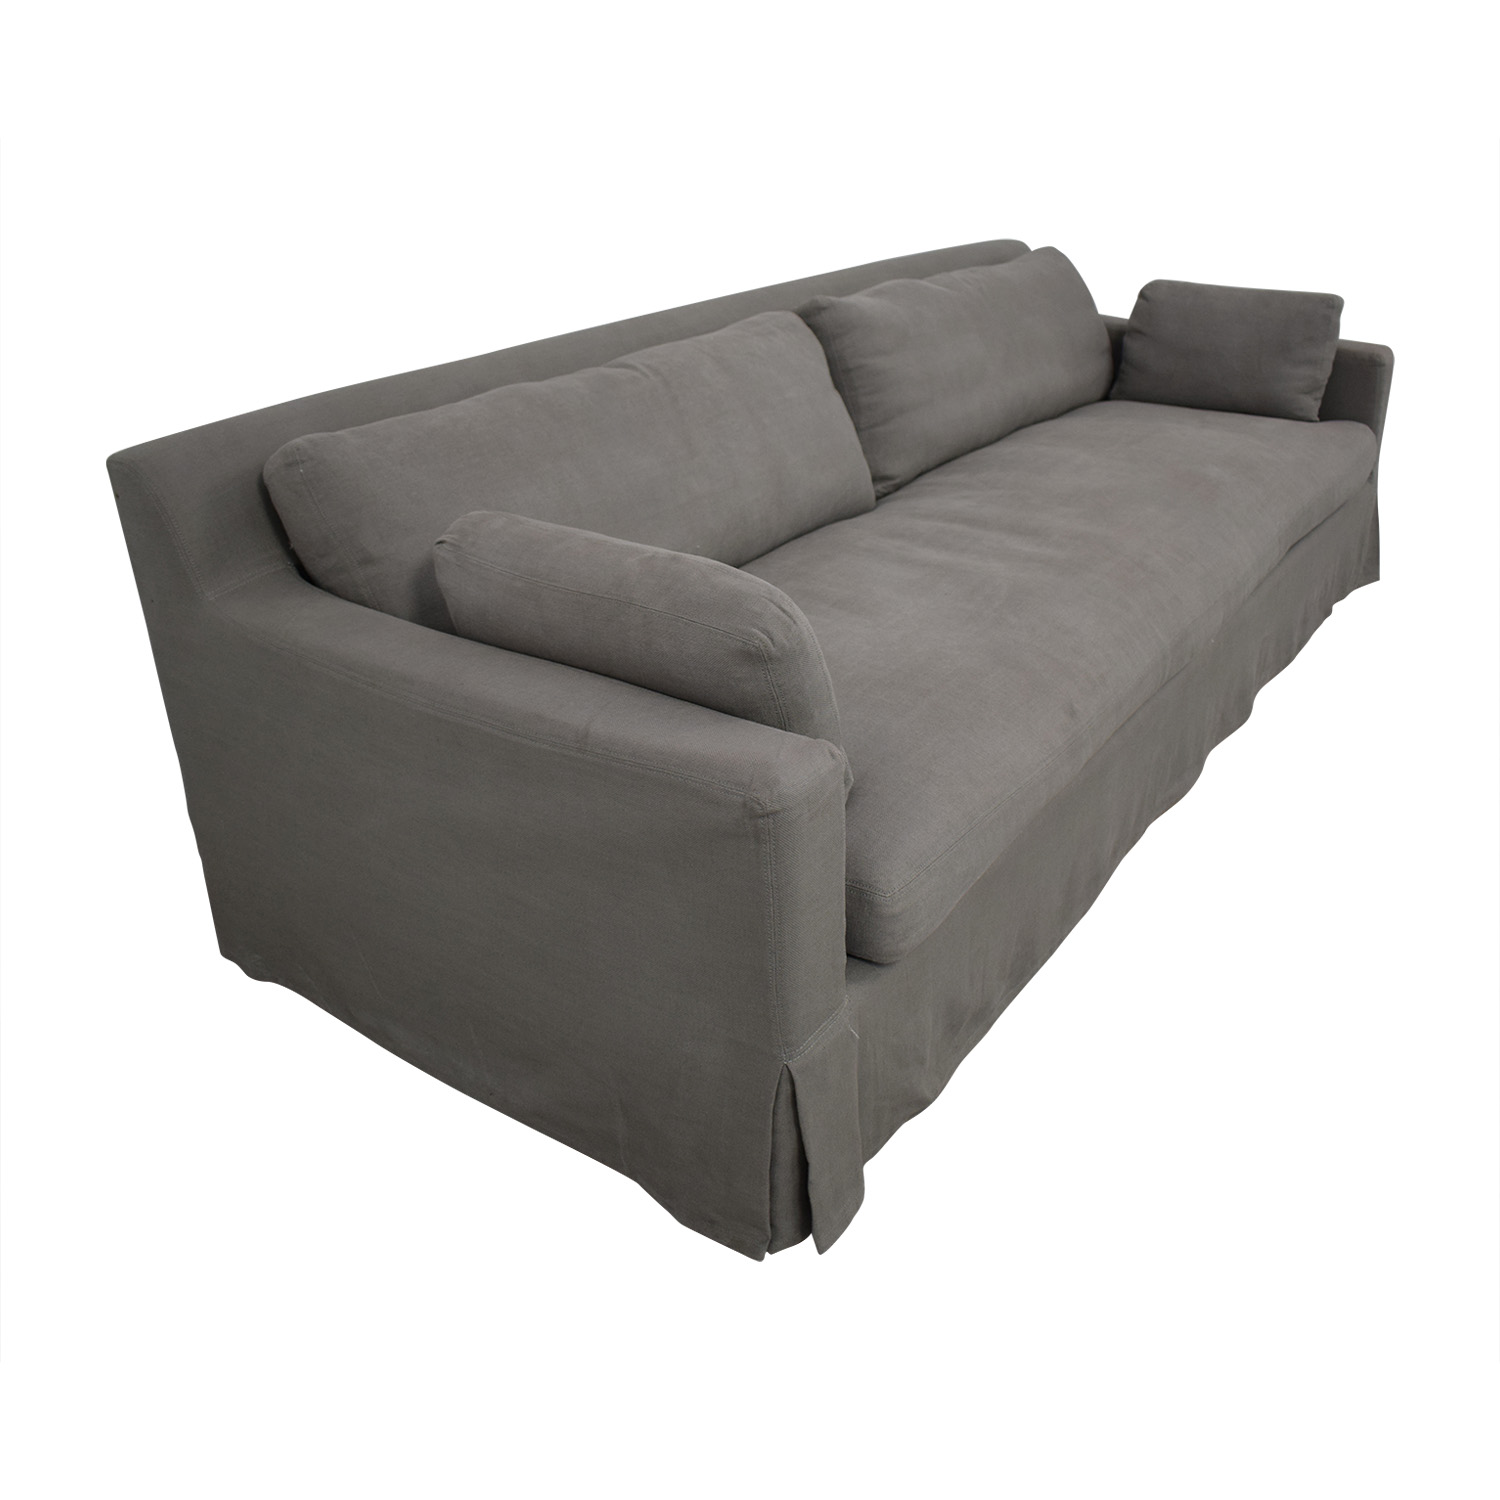 Restoration Hardware Belgian Track Arm Sofa sale